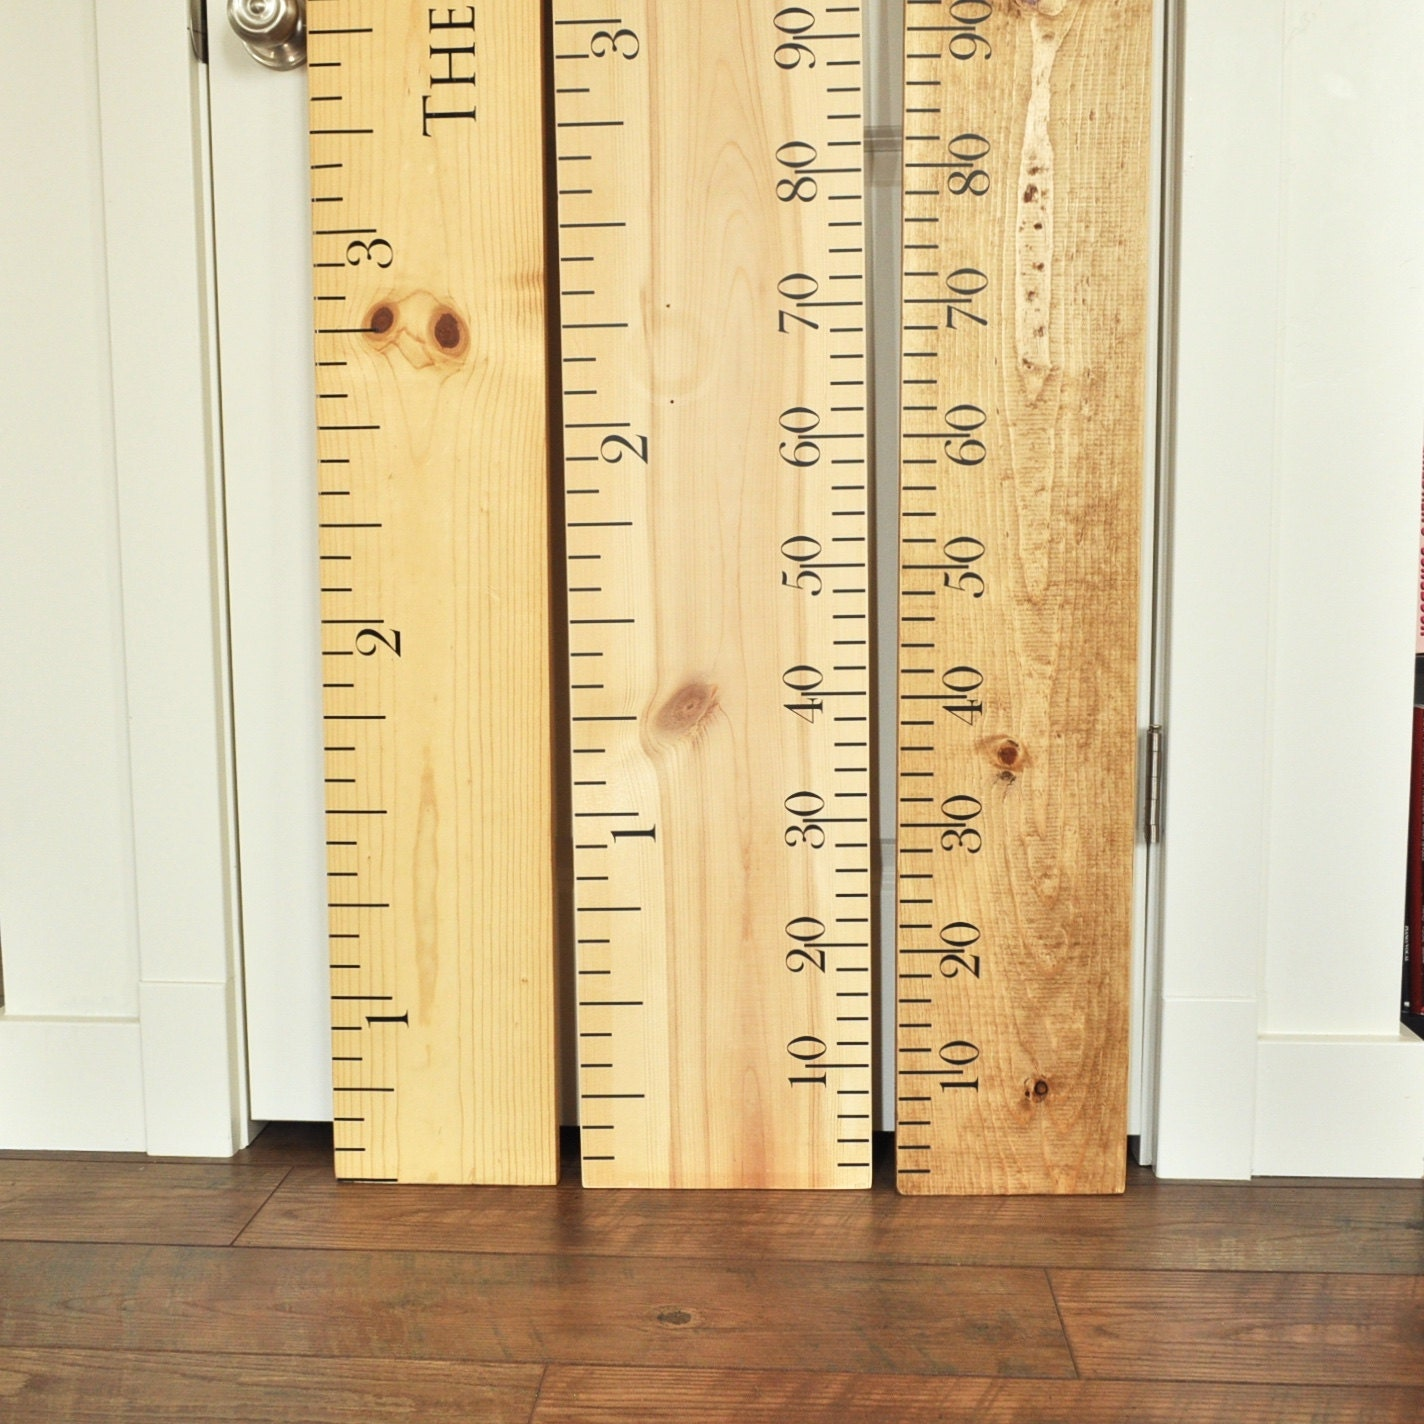 Ruler growth chart kit diy project oversized wood ruler zoom nvjuhfo Gallery